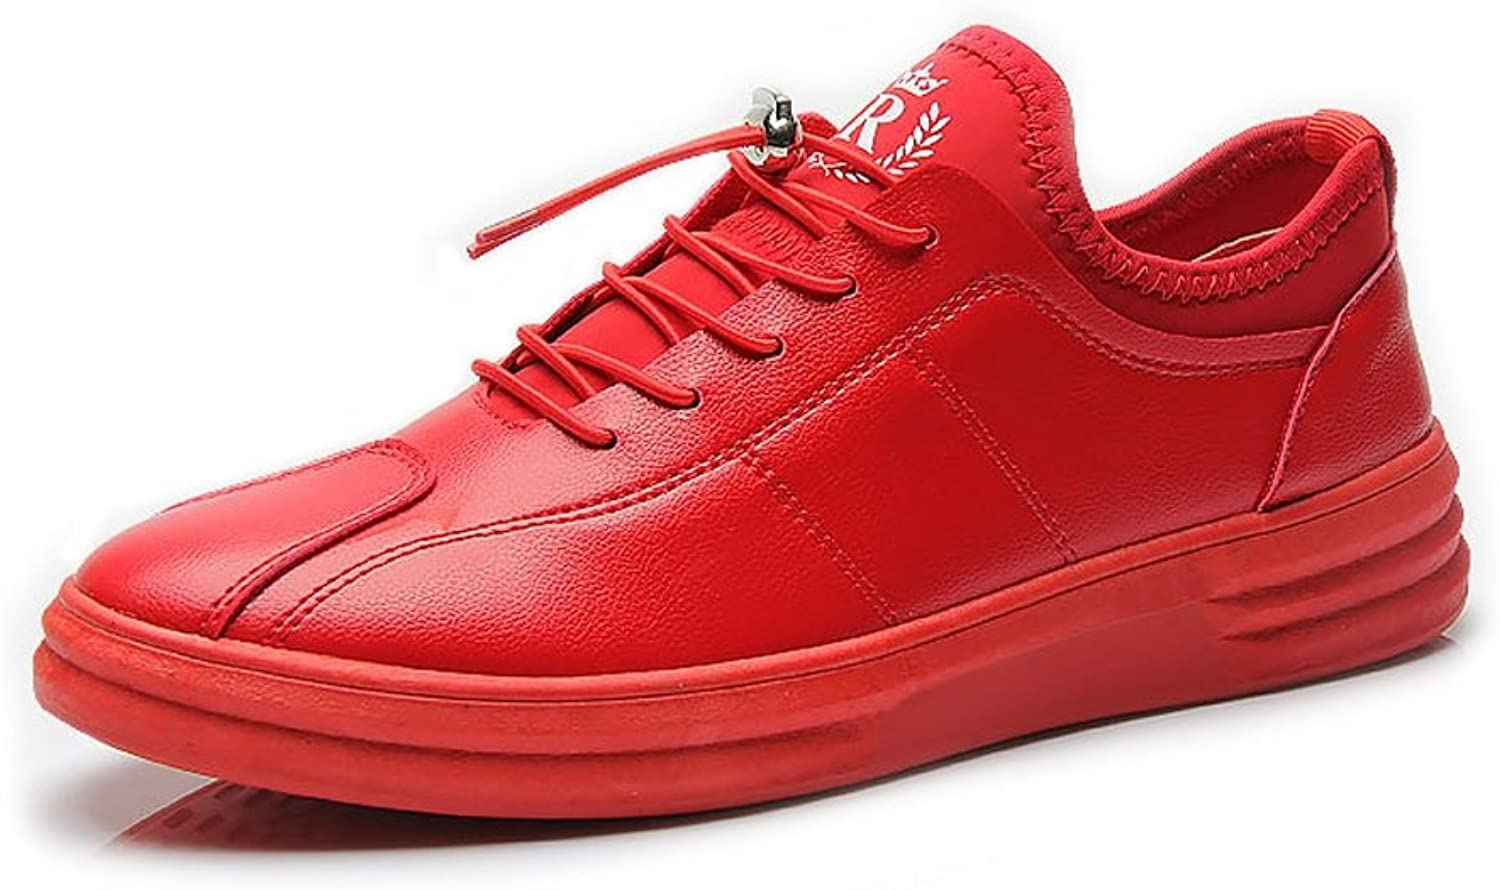 MUMUWU Men's Flat Sport shoes Casual Loafers Lace Up Adjusted Non-slip PU Leather Ankle Sneakers carrier